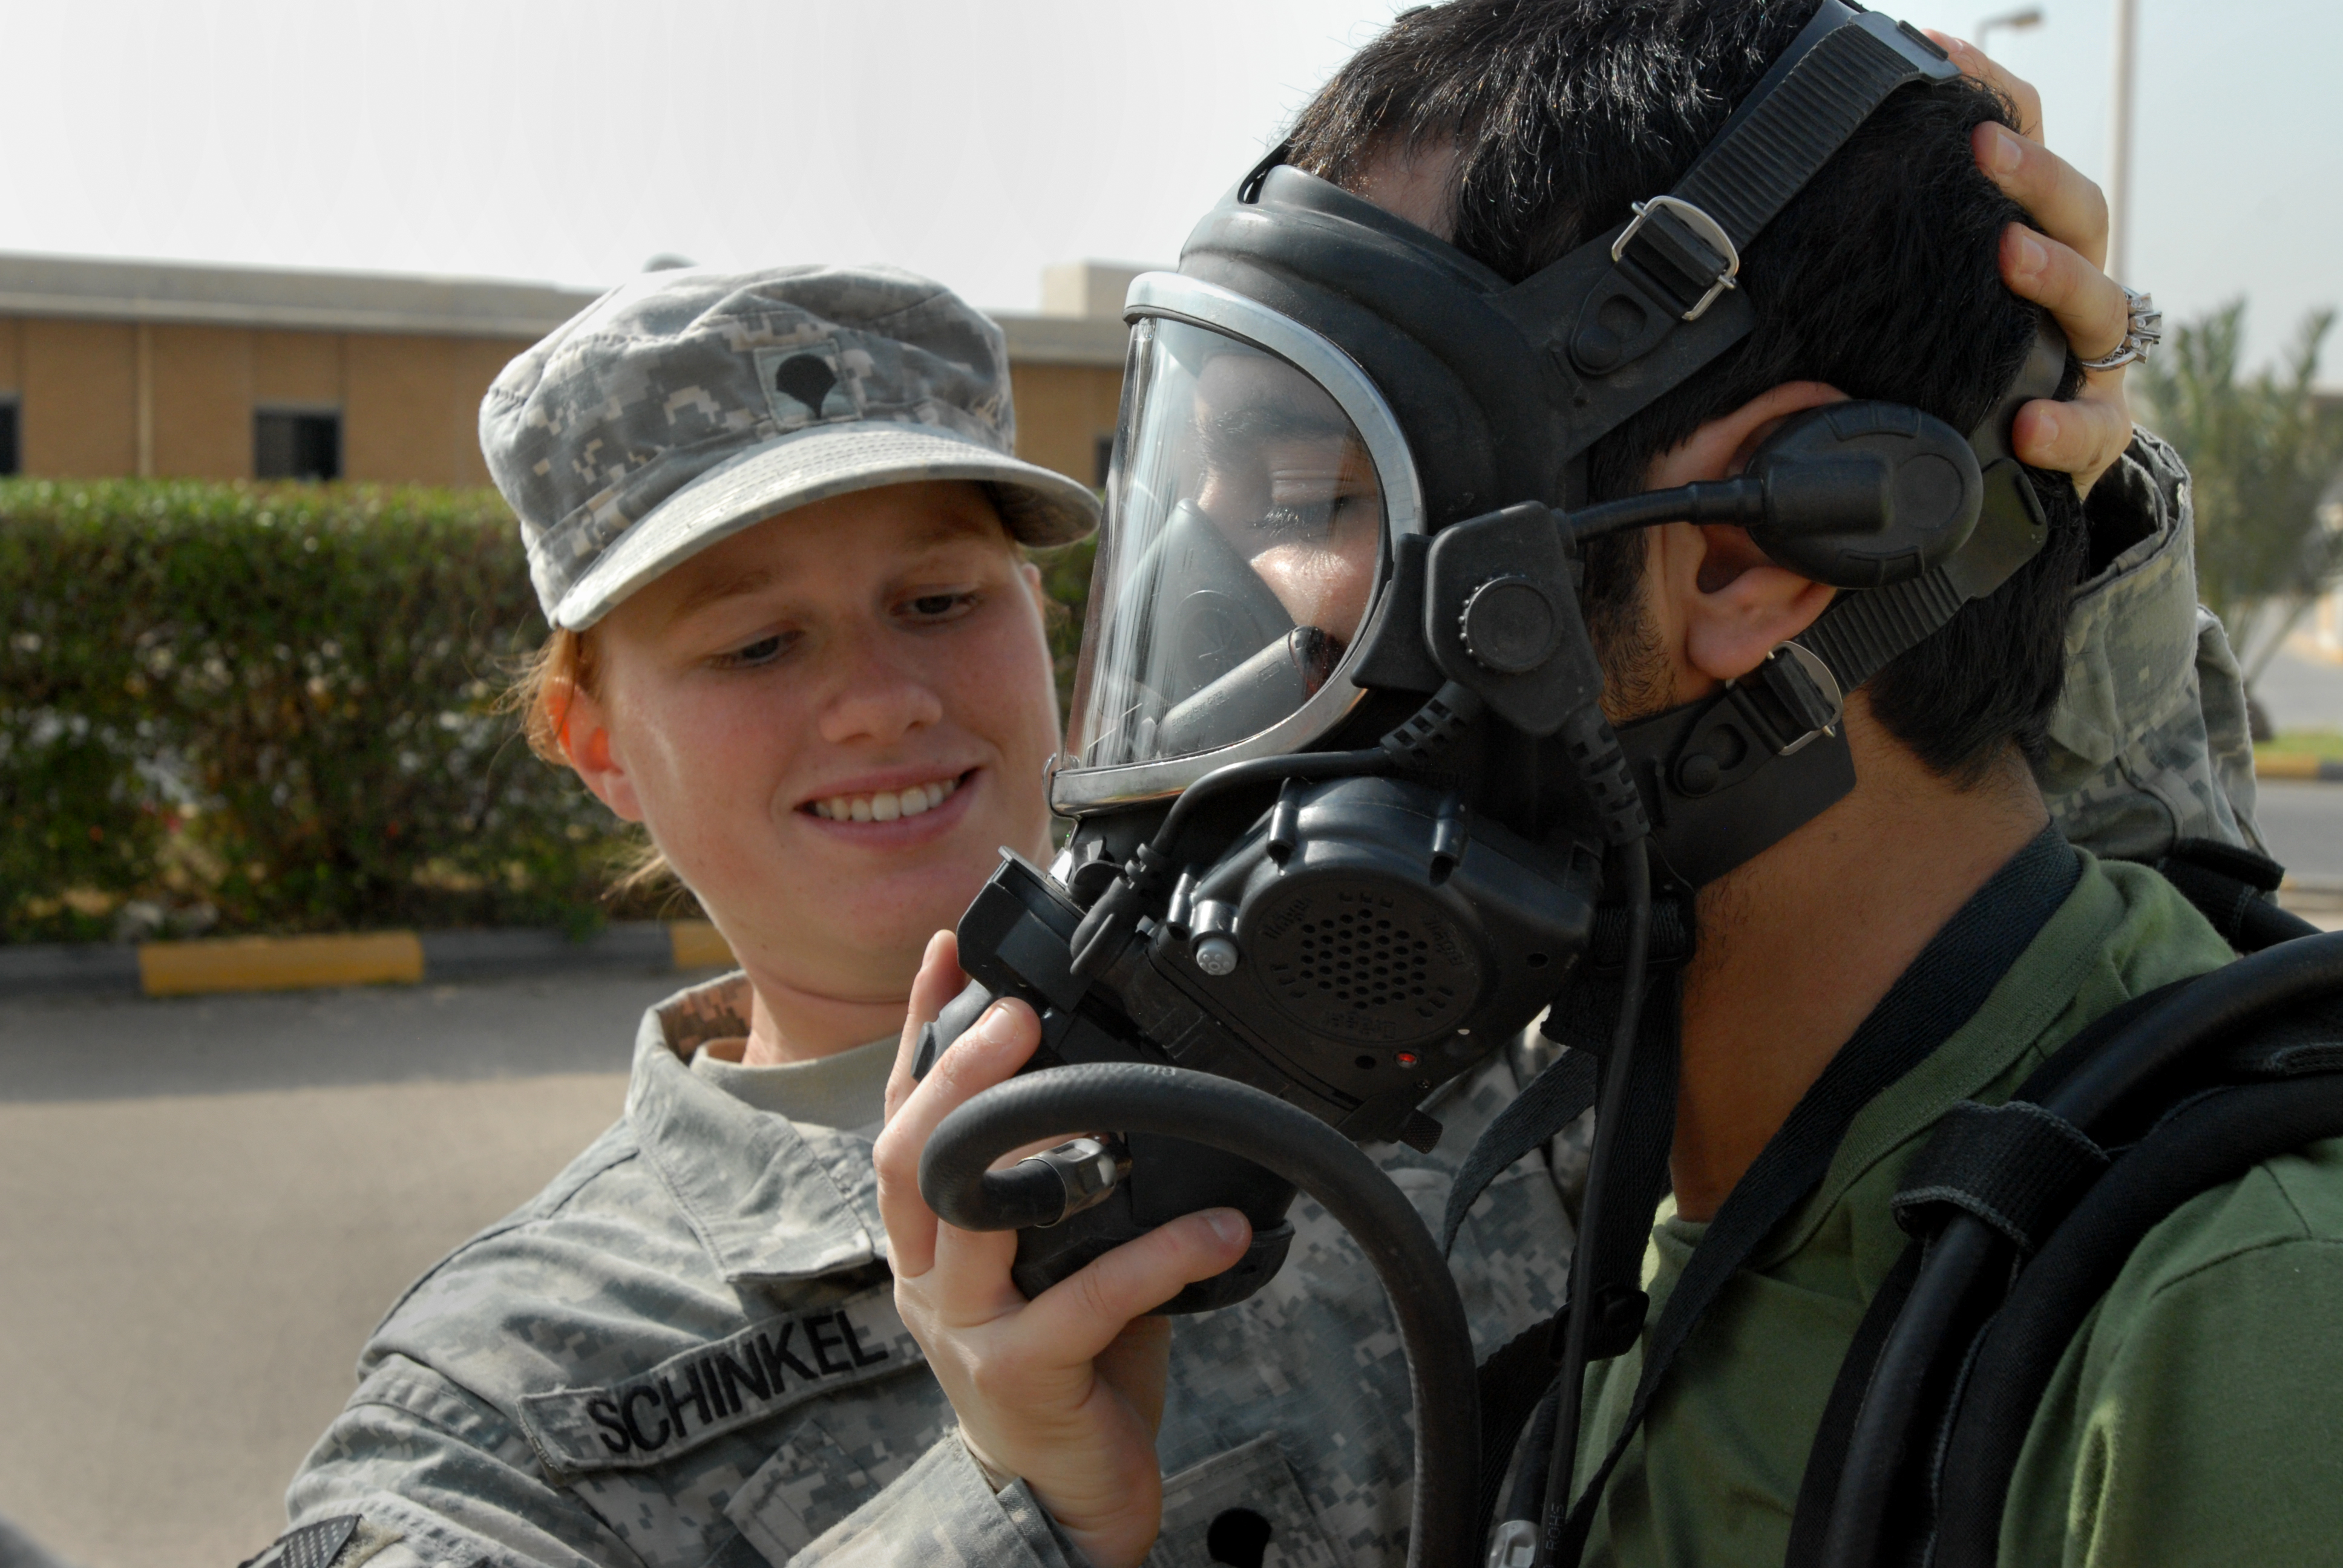 U.S._Army_Spc._Amanda_K._Schinkel%2C_a_chemical_operations_specialist_assigned_to_the_Reconnaissance_Platoon%2C_61st_Chemical_Company%2C_115th_Fires_Brigade%2C_attaches_an_oxygen_hose_to_the_protective_mask_of_a_Kuwait_091118-A-PT935-510